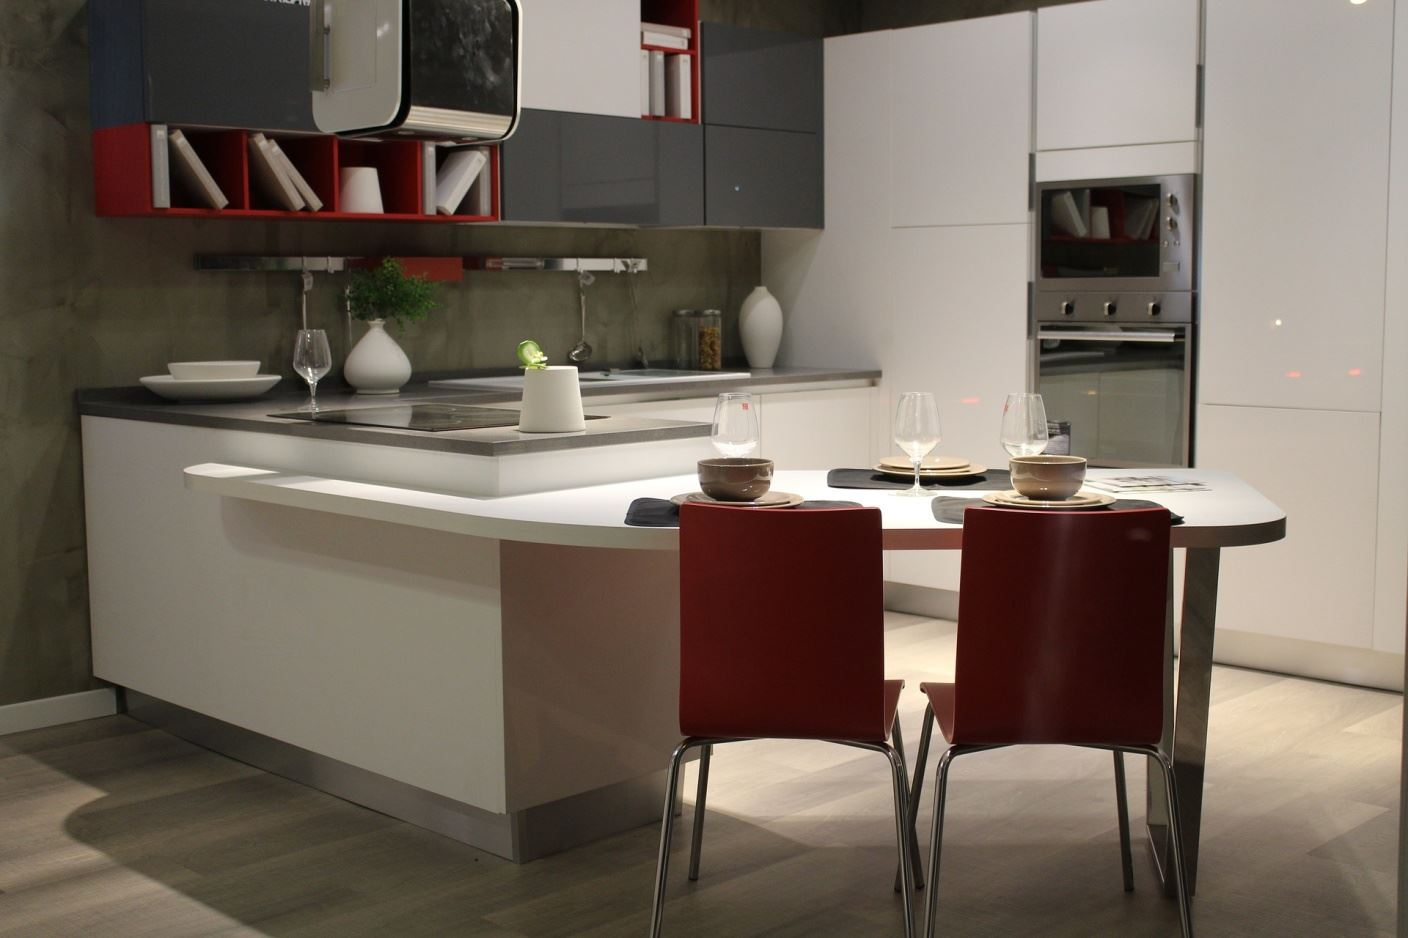 The Most Important Elements You Should Consider For The Best Kitchen